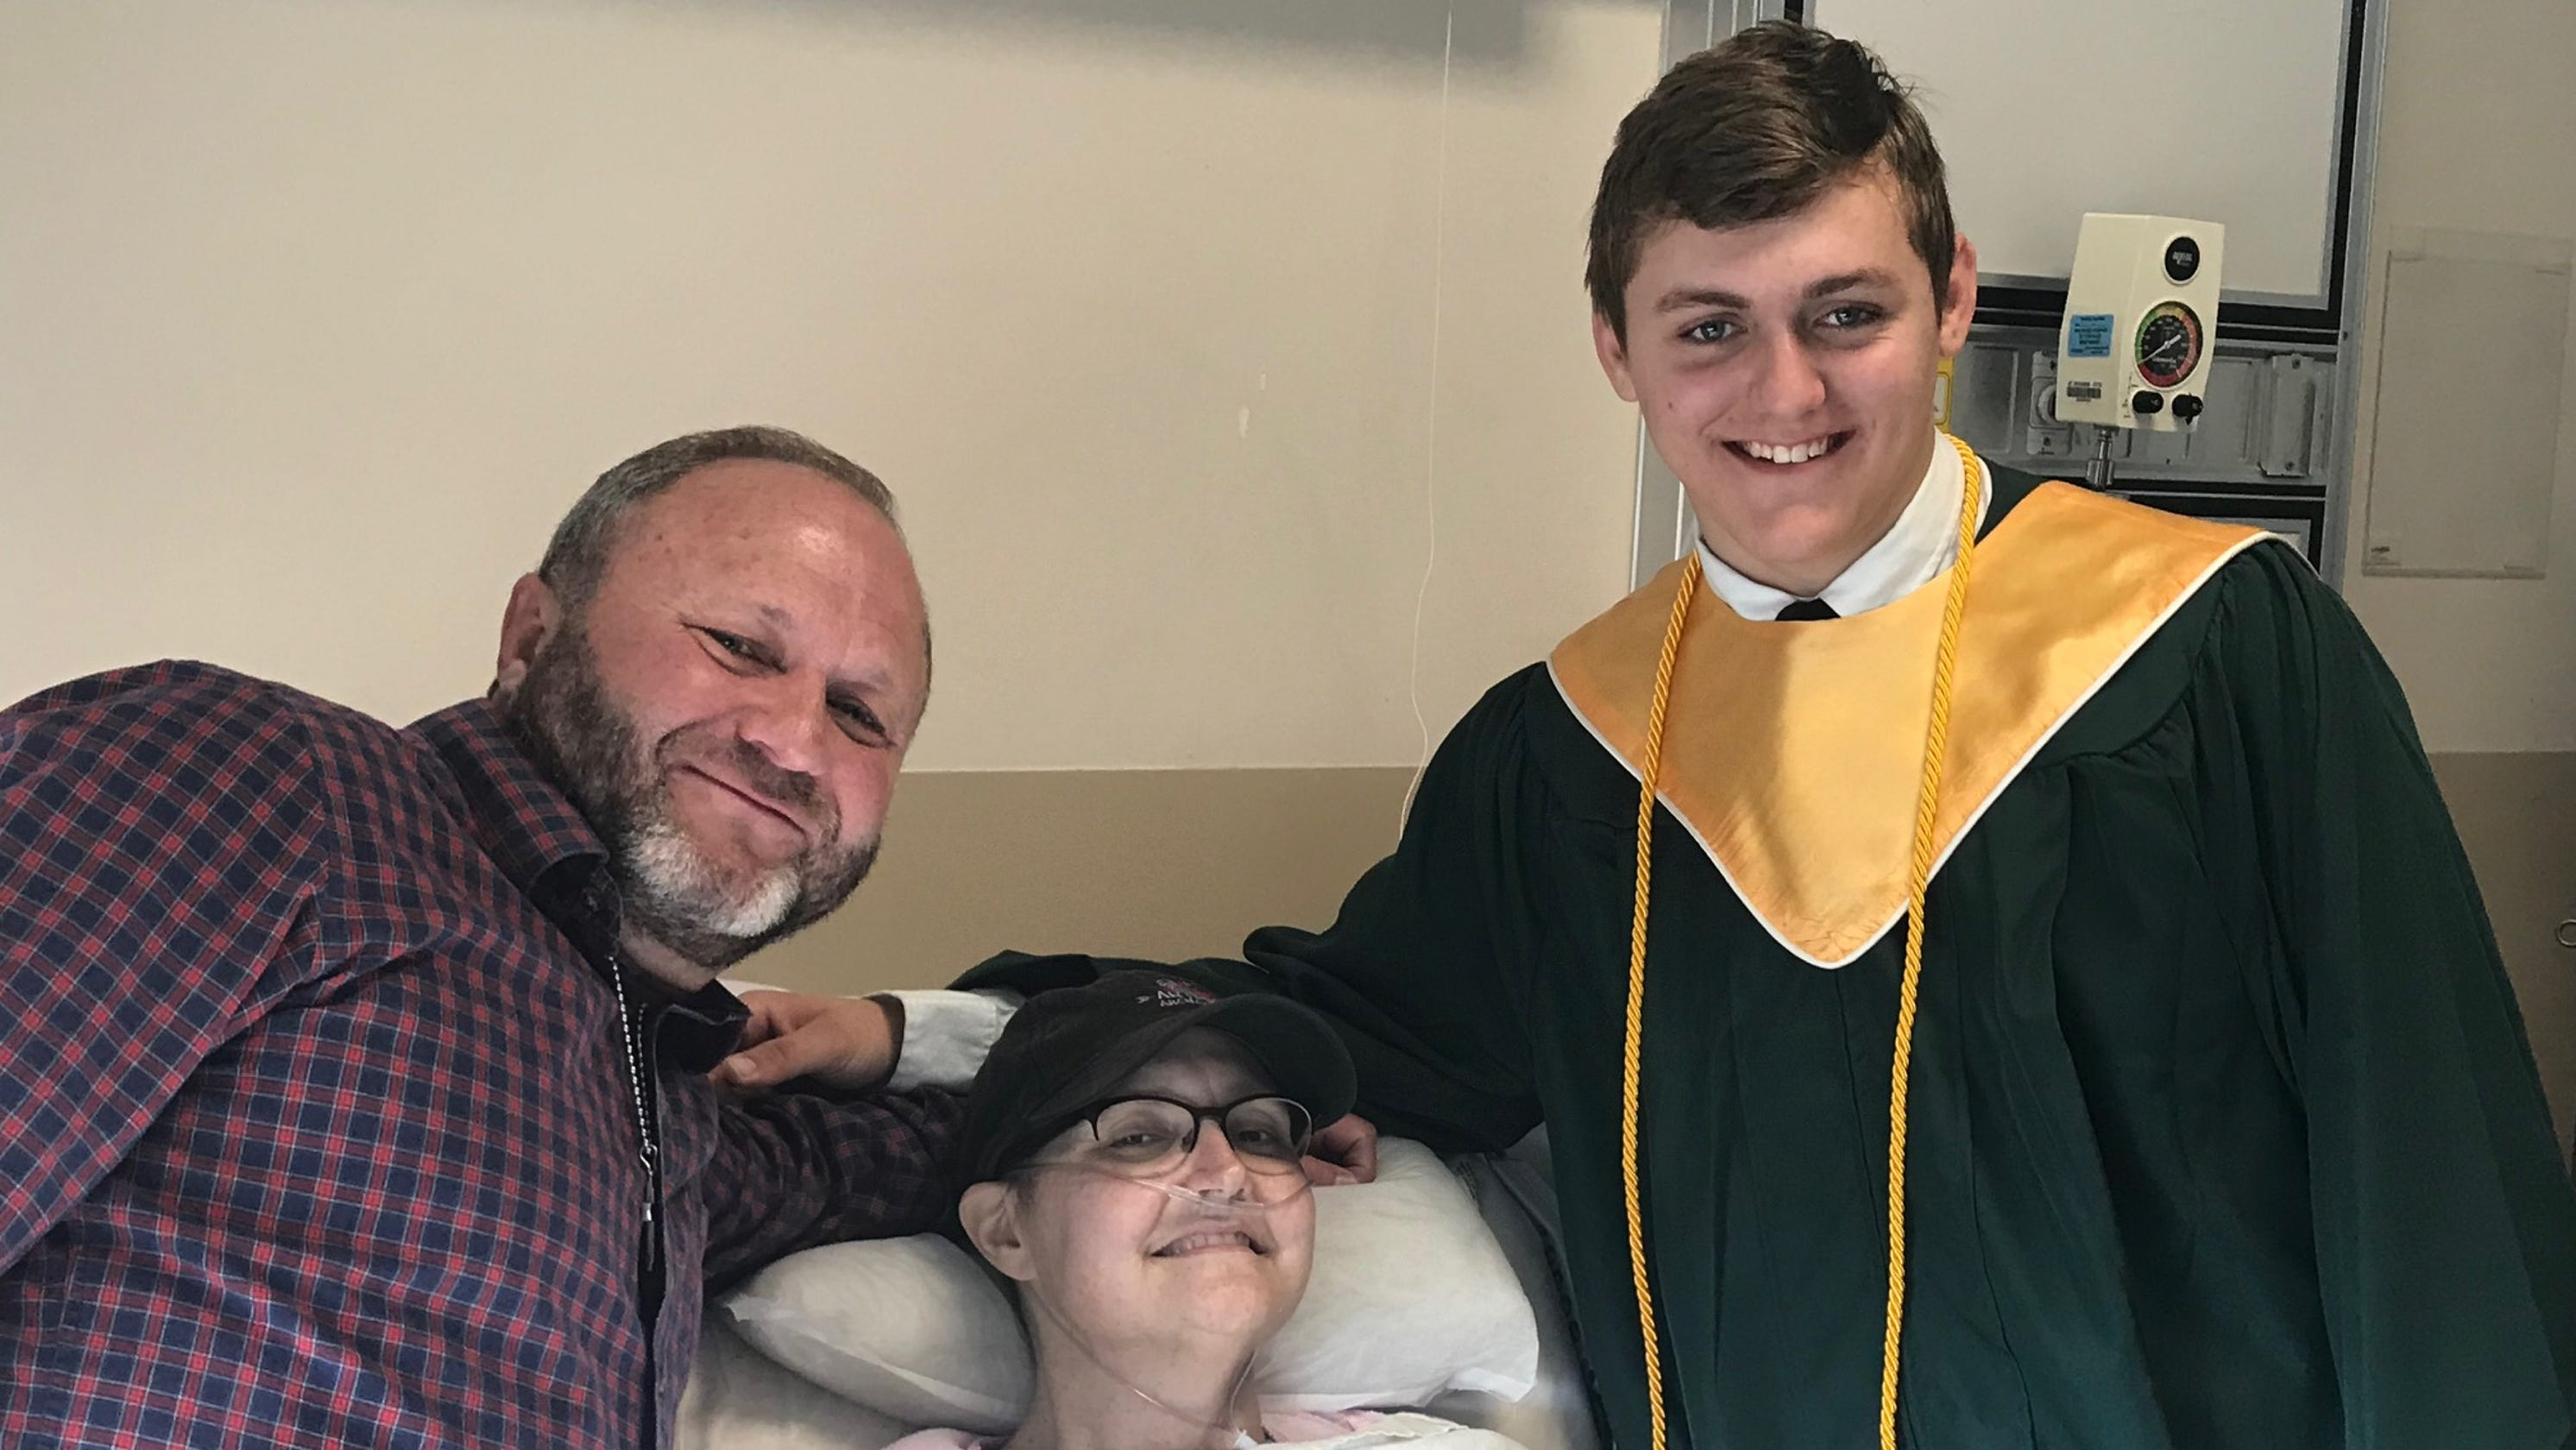 Principal, school superintendent bring student's graduation to dying mom's hospital room